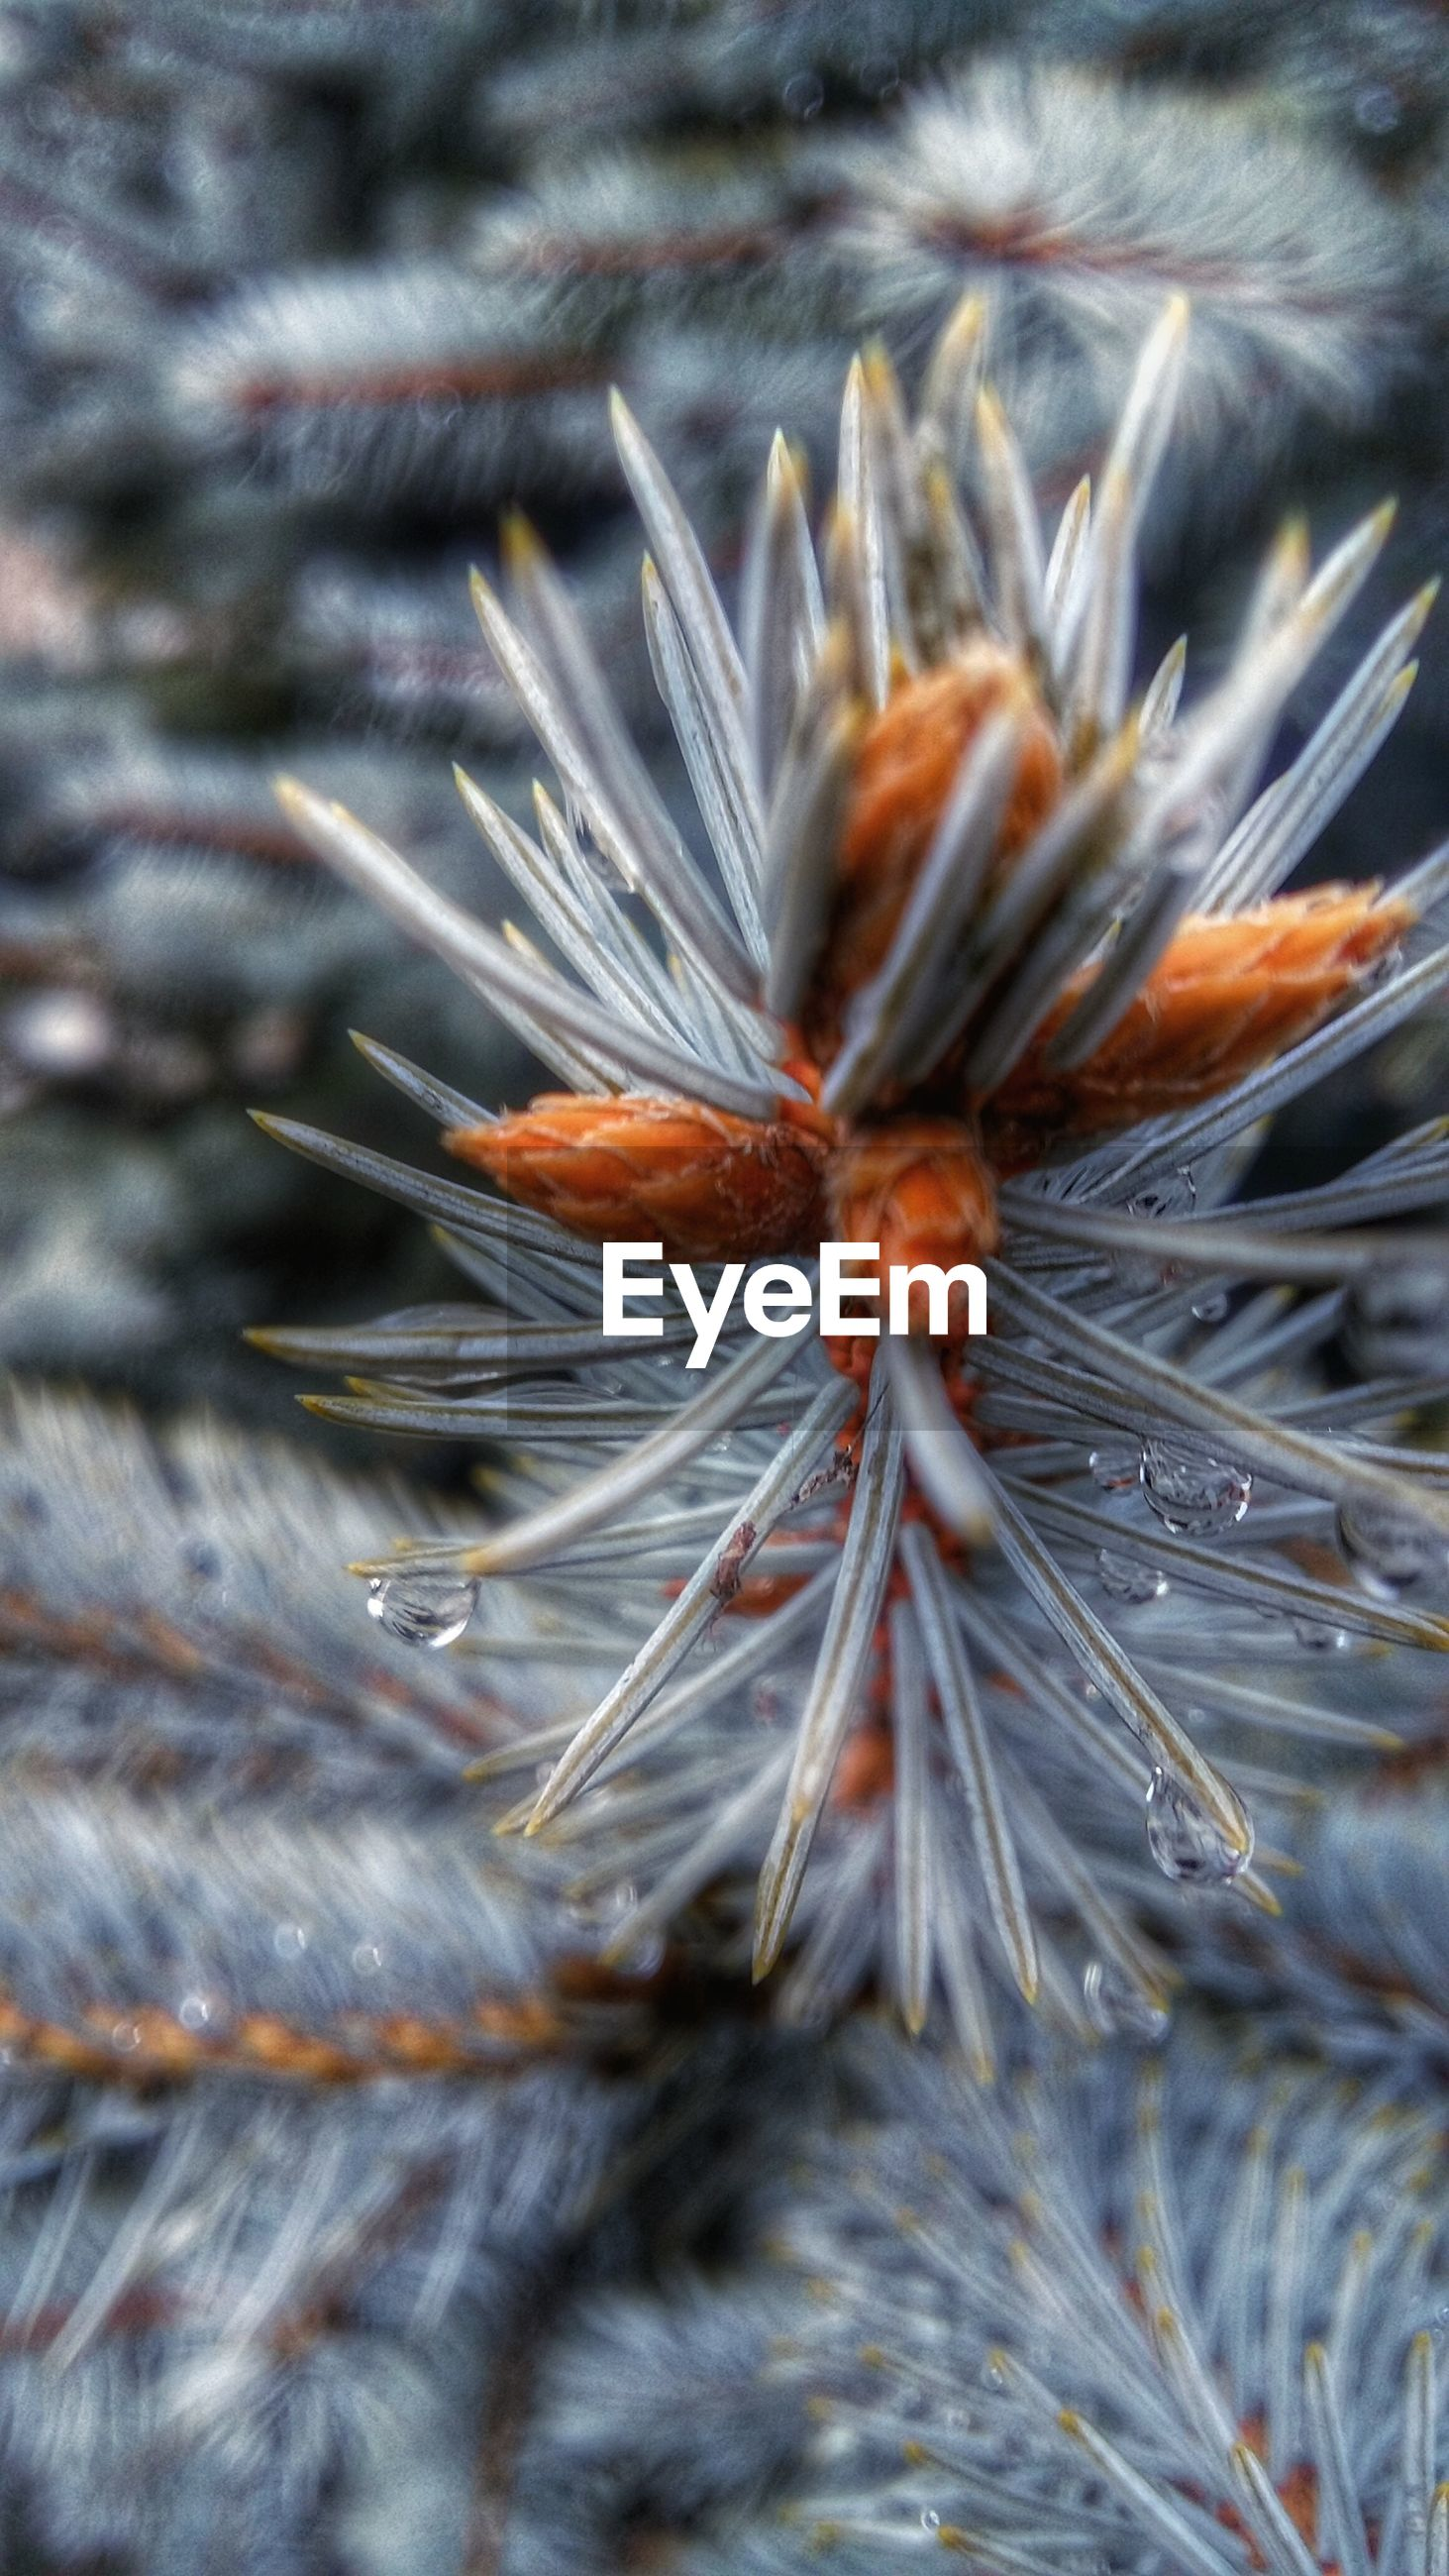 close-up, dry, nature, selective focus, fragility, focus on foreground, insect, outdoors, animal themes, one animal, natural pattern, no people, beauty in nature, day, animals in the wild, wildlife, plant, season, high angle view, dried plant